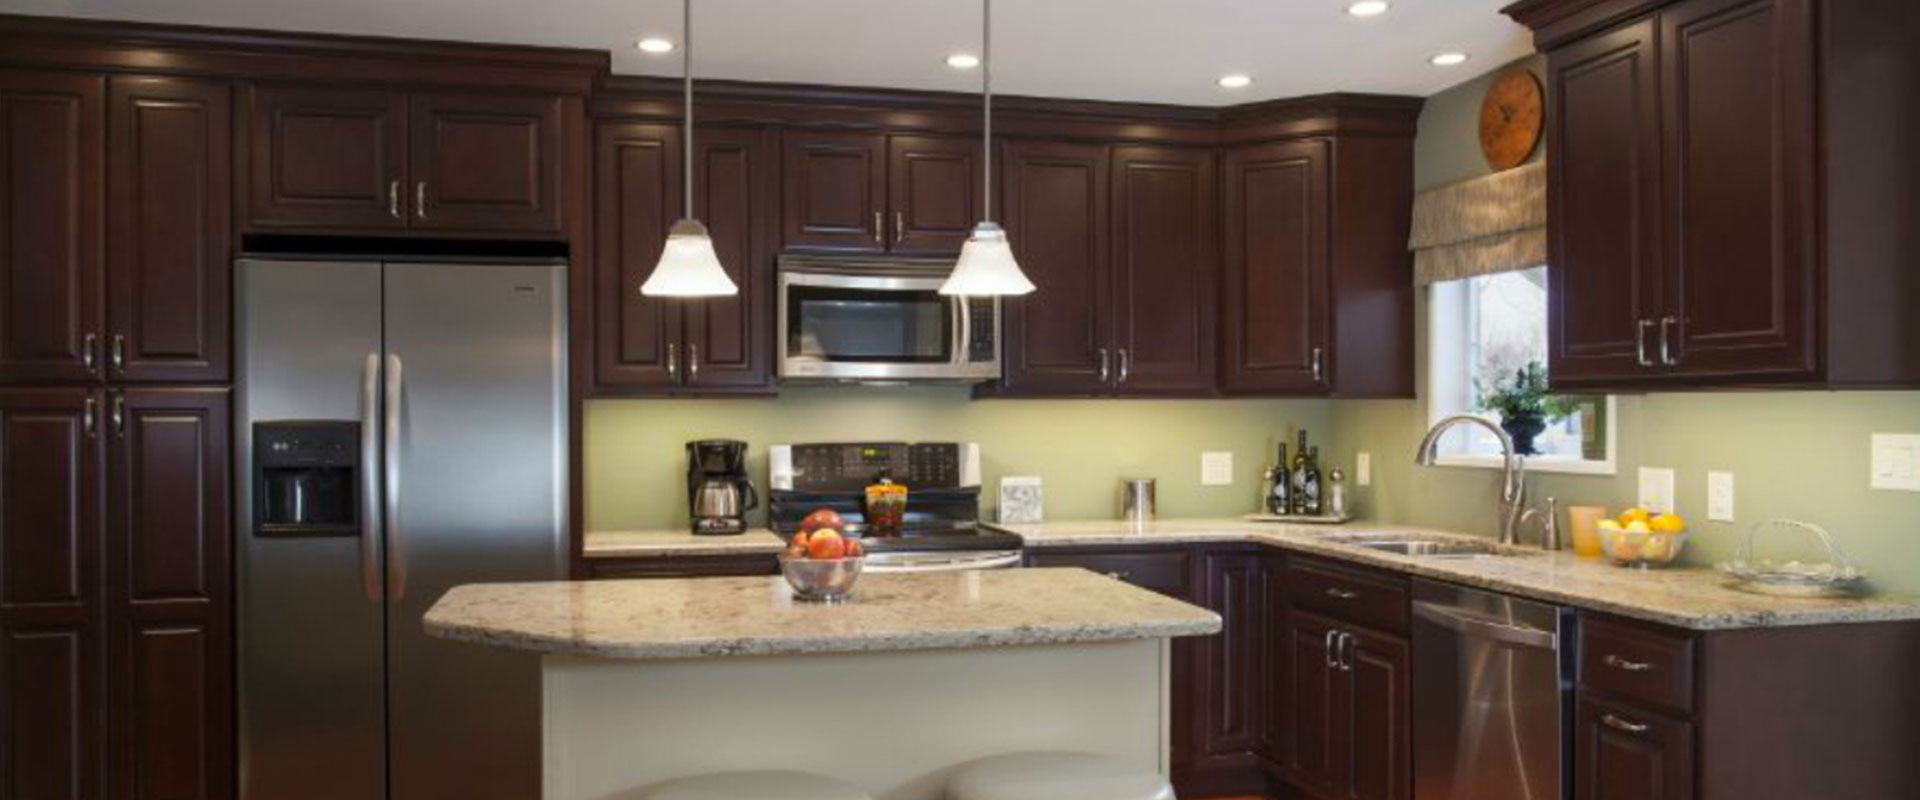 Superieur Marc Cantin Cabinetry: Manchester, NH: Kitchen Remodeling ...